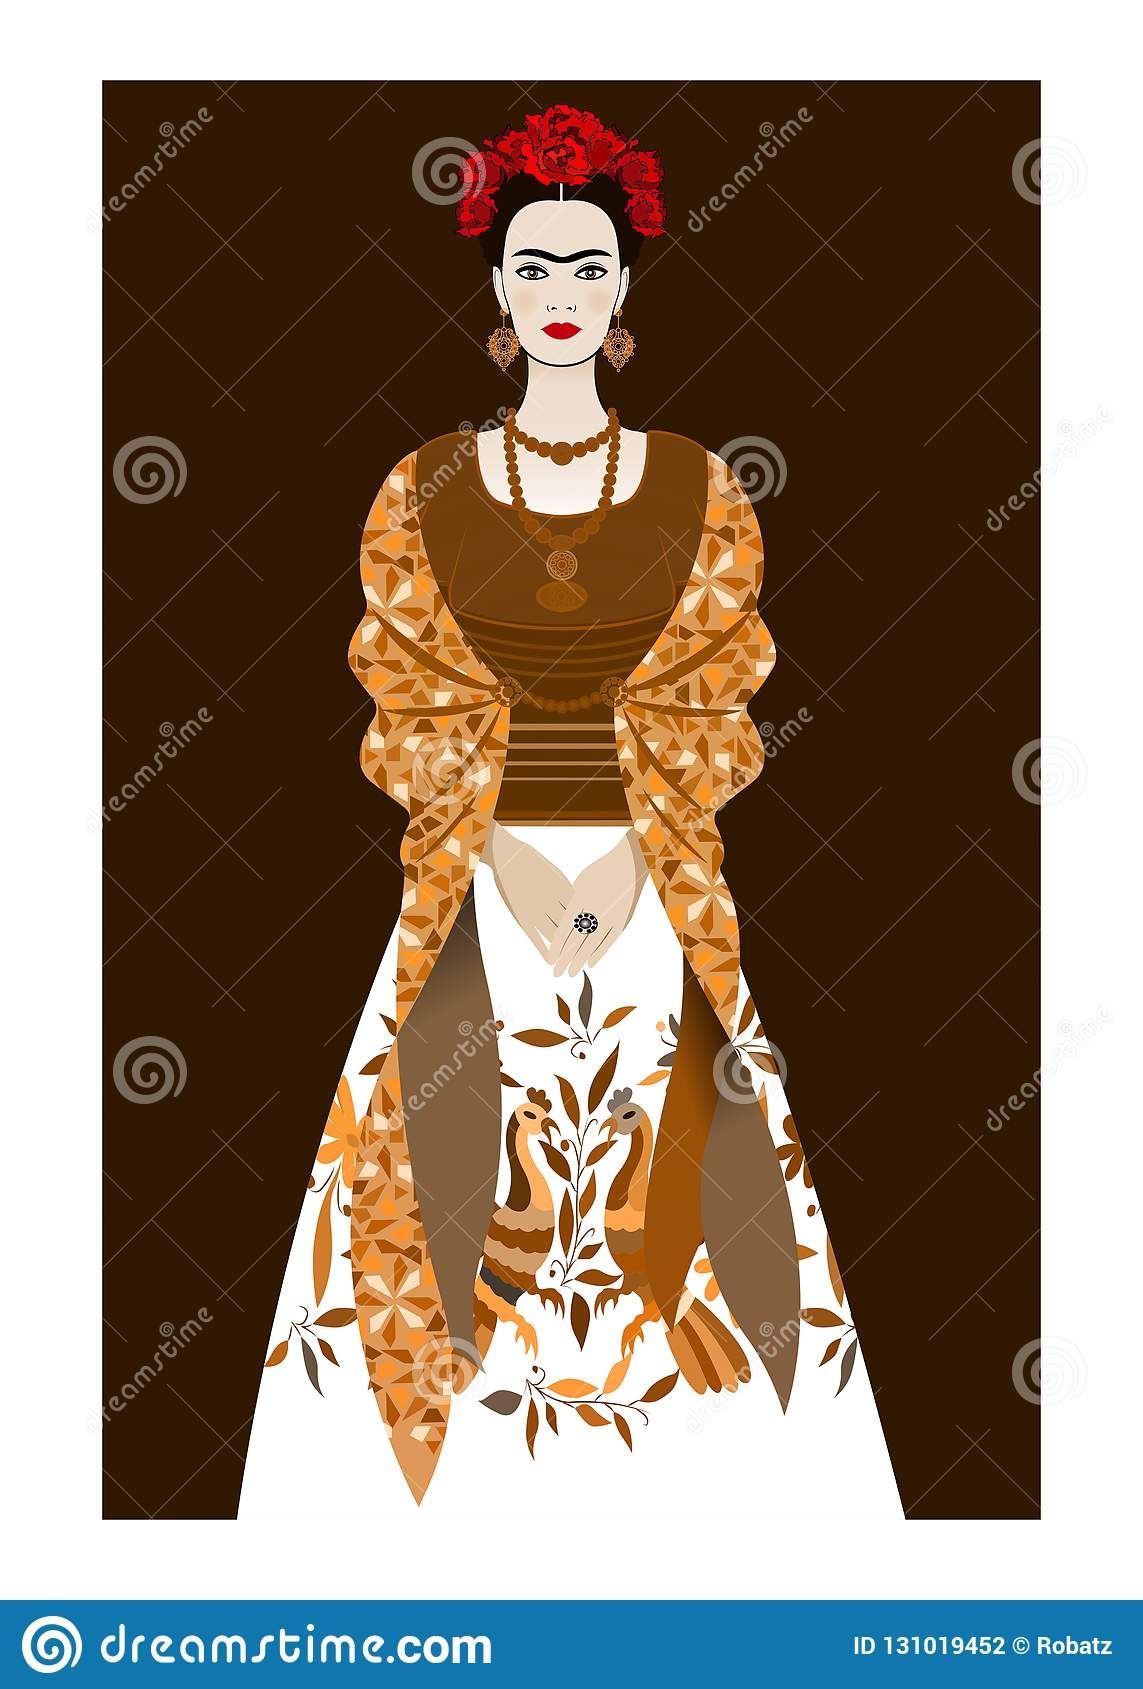 Frida Kahlo illustration portrait , young beautiful mexican woman with a traditional hairstyle, Mexican crafts jewelry and dress